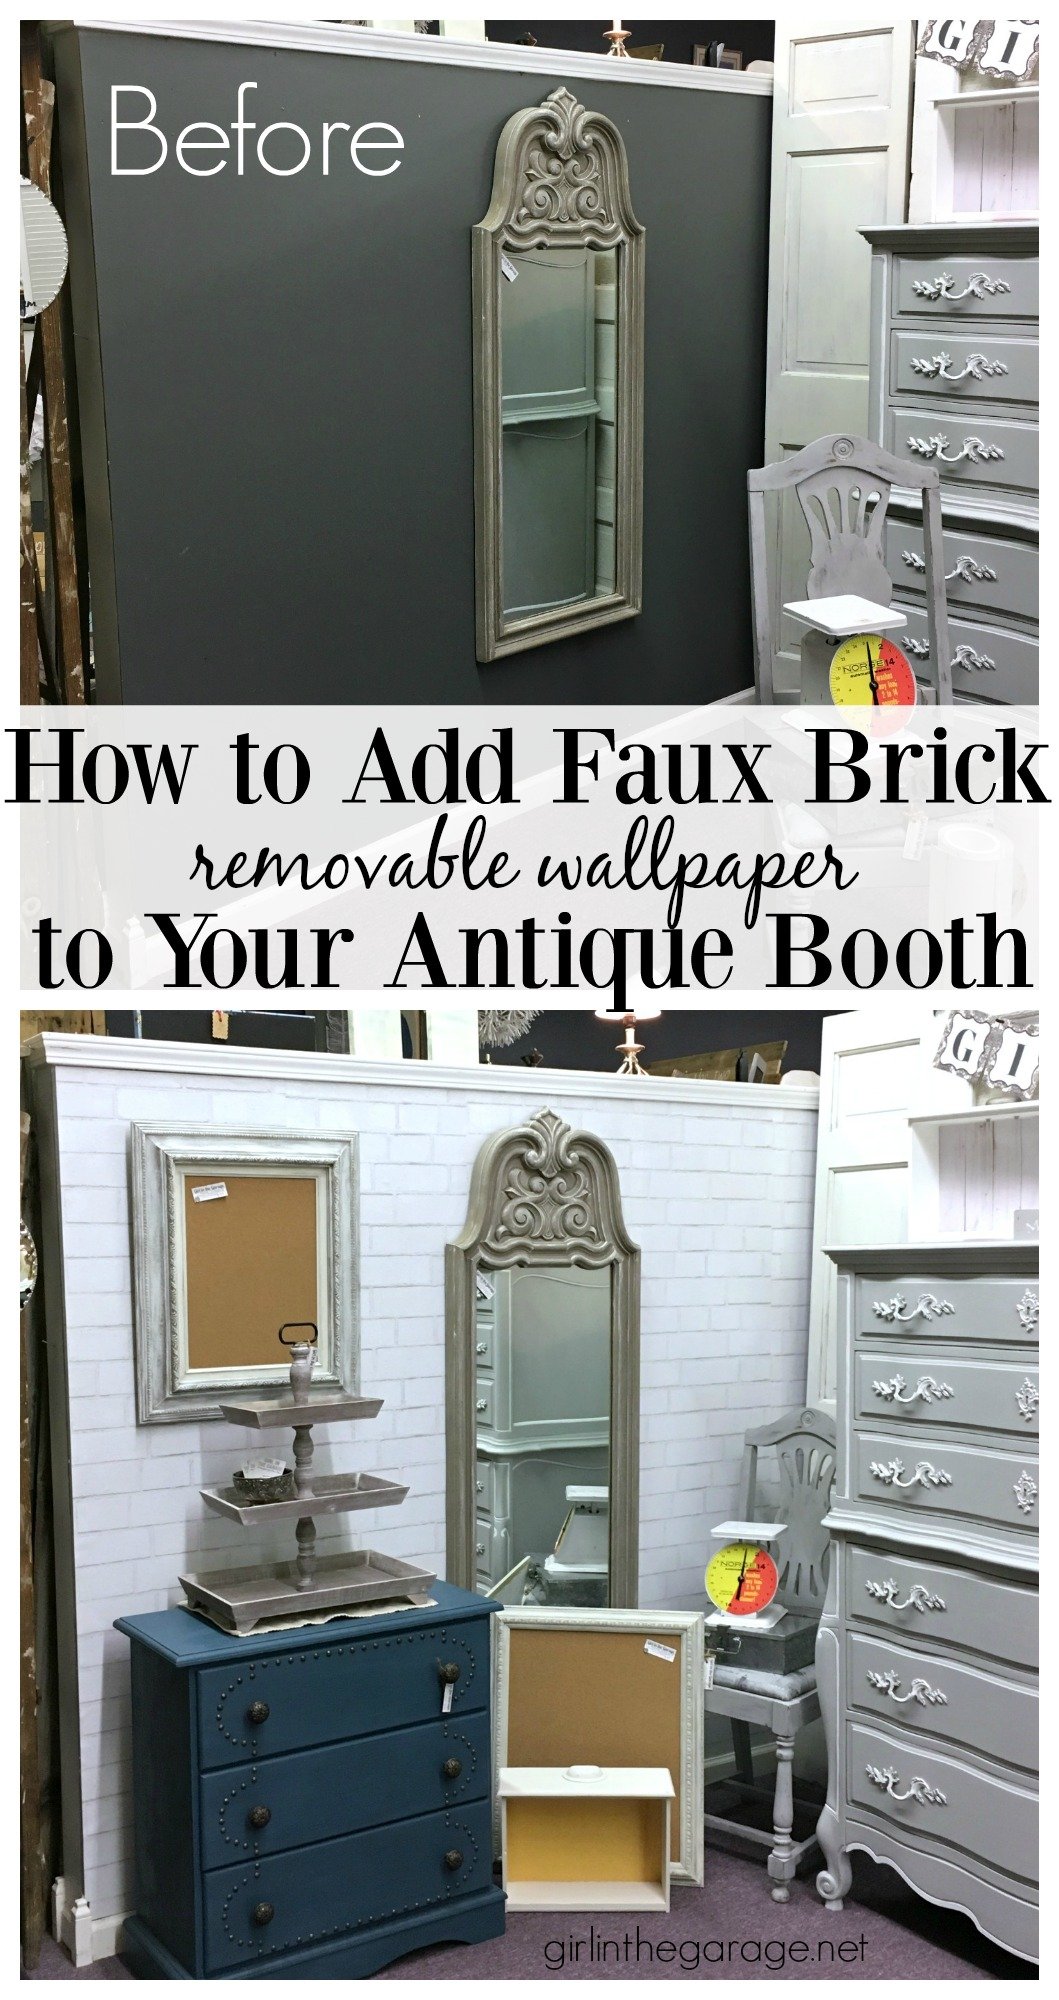 How To Add Faux Brick Removable Wallpaper Antique Booth